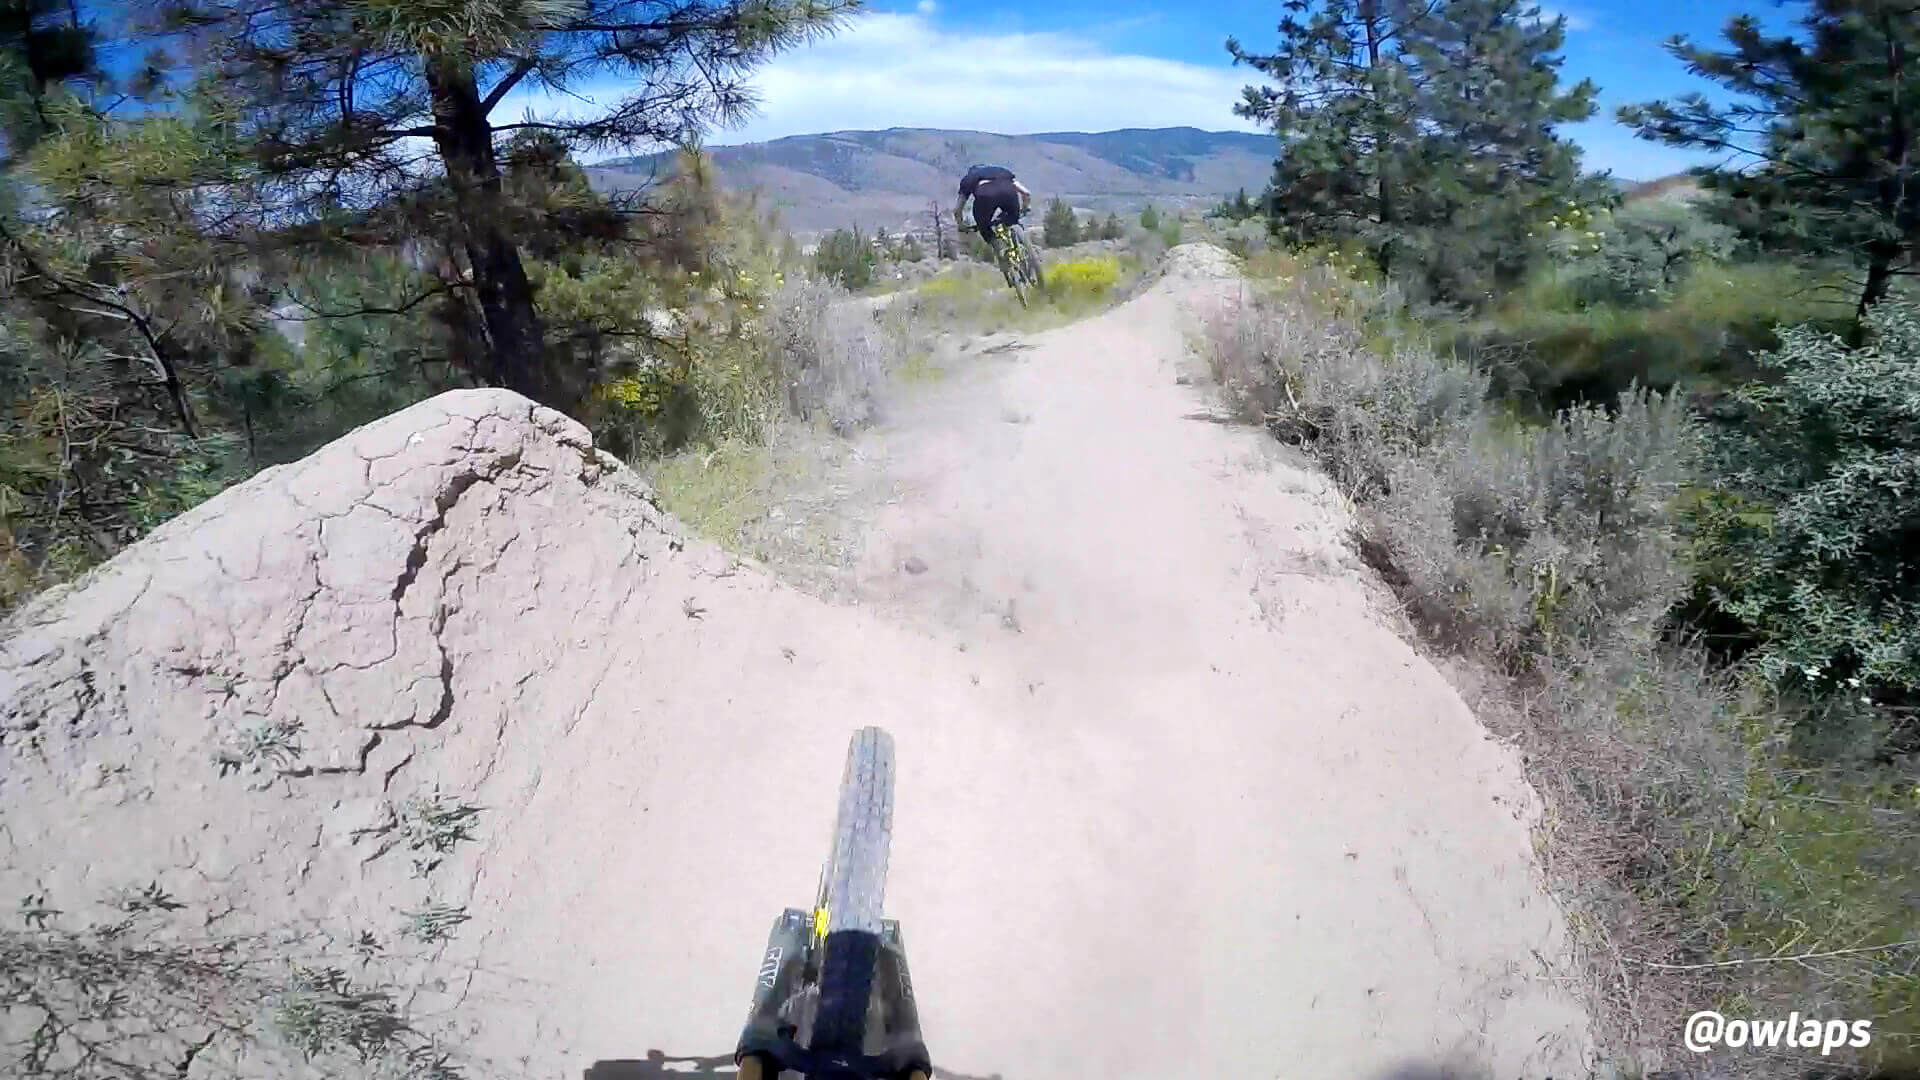 wrangler-kamloops-bike-ranch-canada-owlaps-HD-7